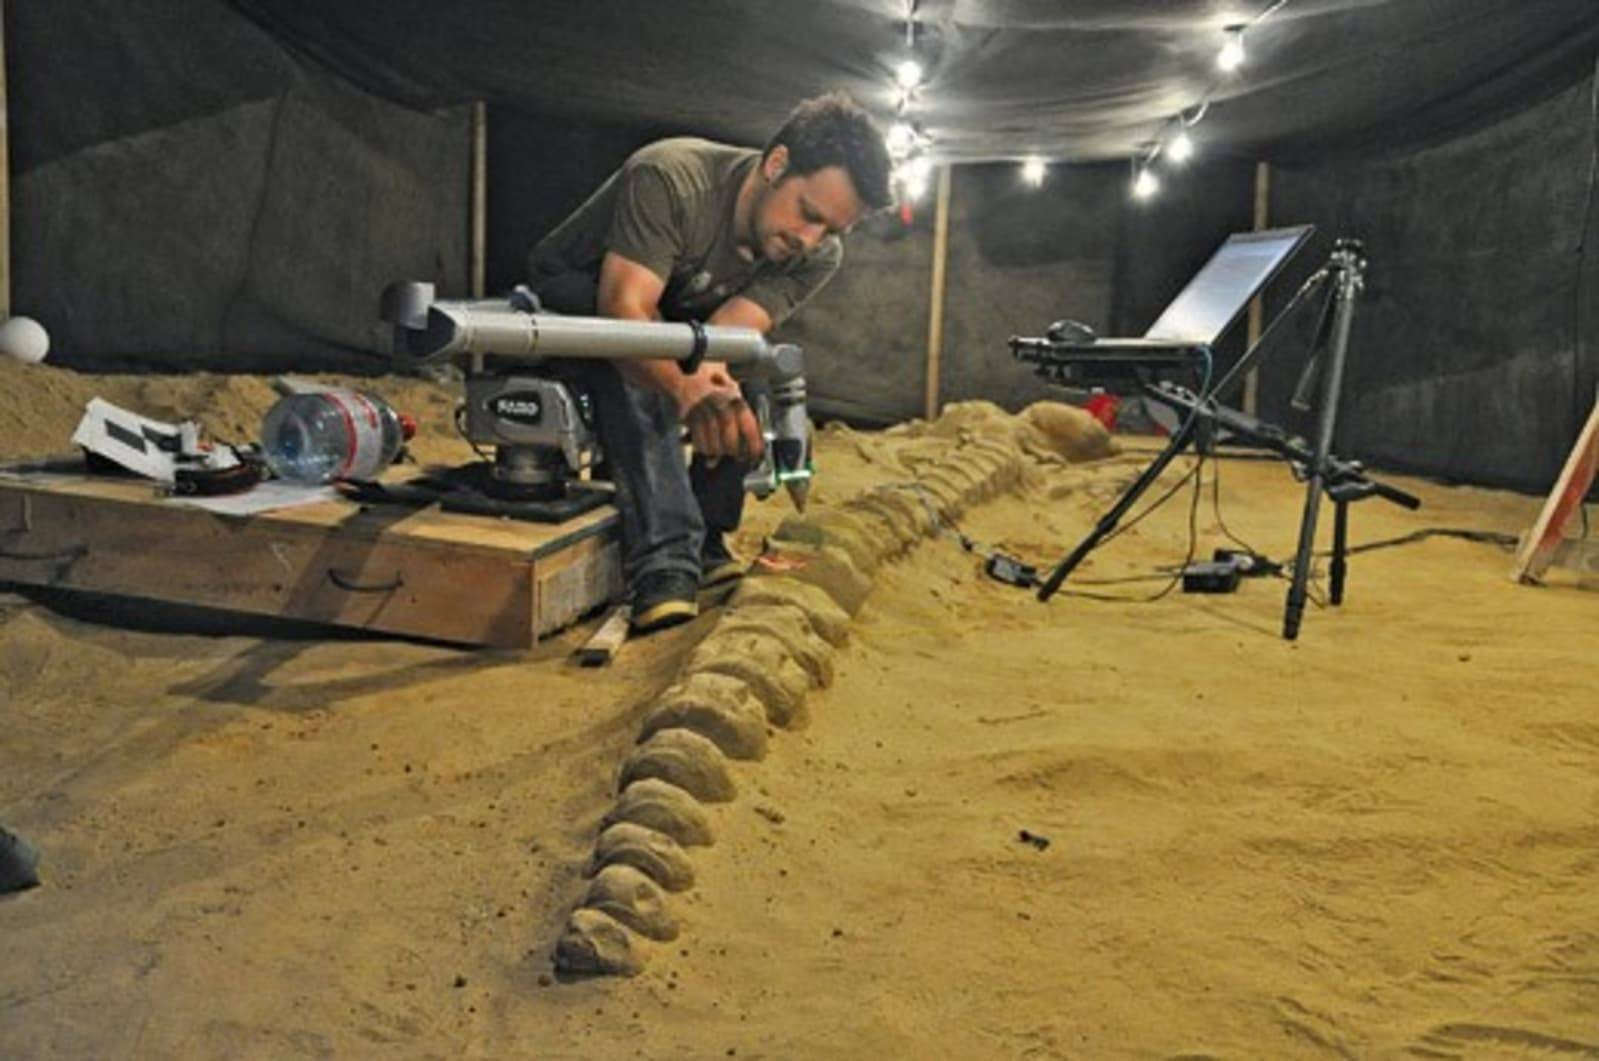 Vince Rossi uses a FARO laser arm scanner to capture a whale skeleton for research.